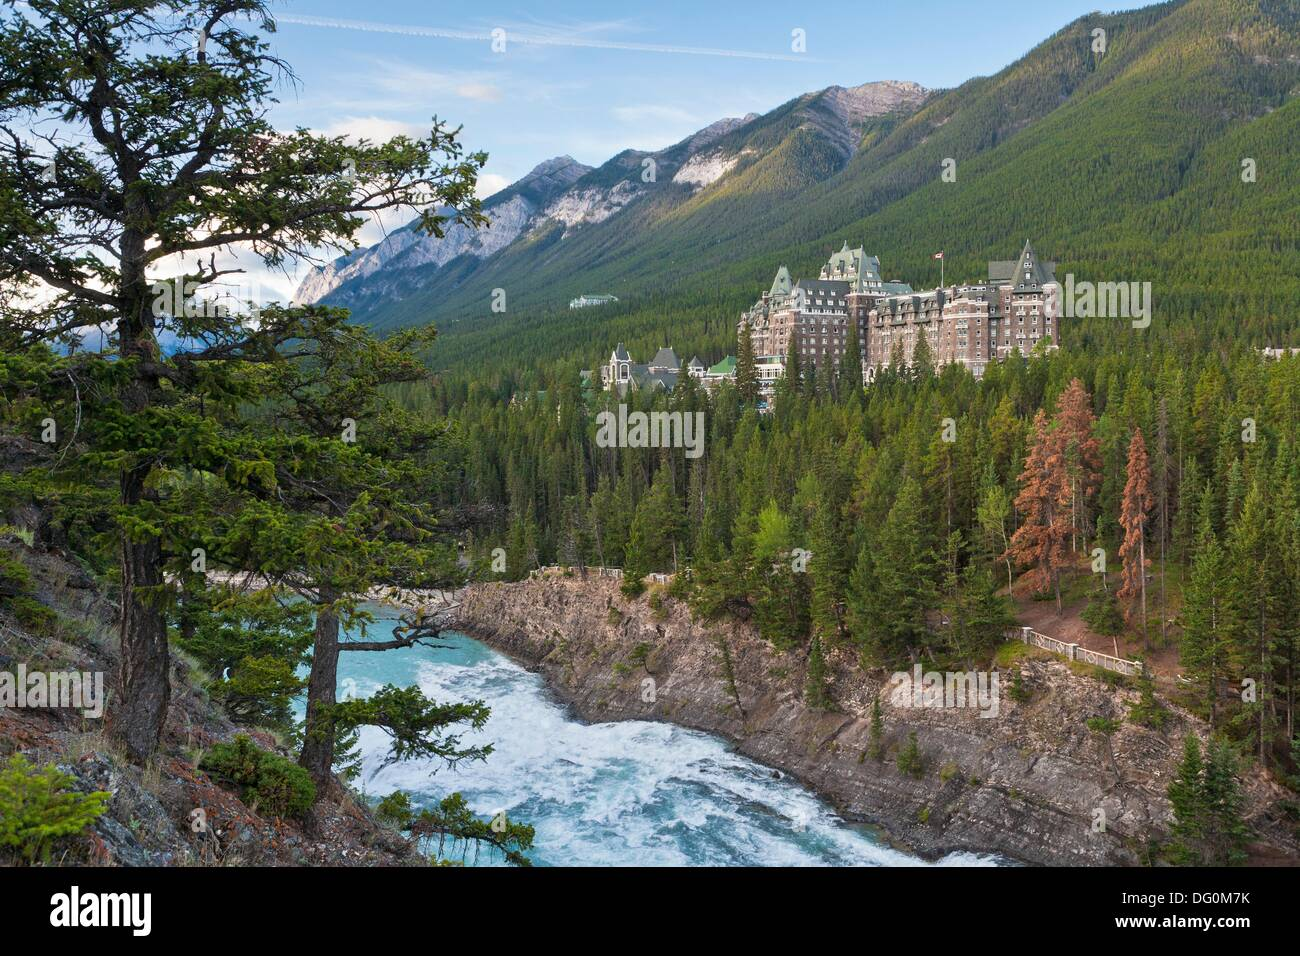 The imposing Banff Springs Hotel with Bow River, Banff National Park, Alberta, Canada - Stock Image